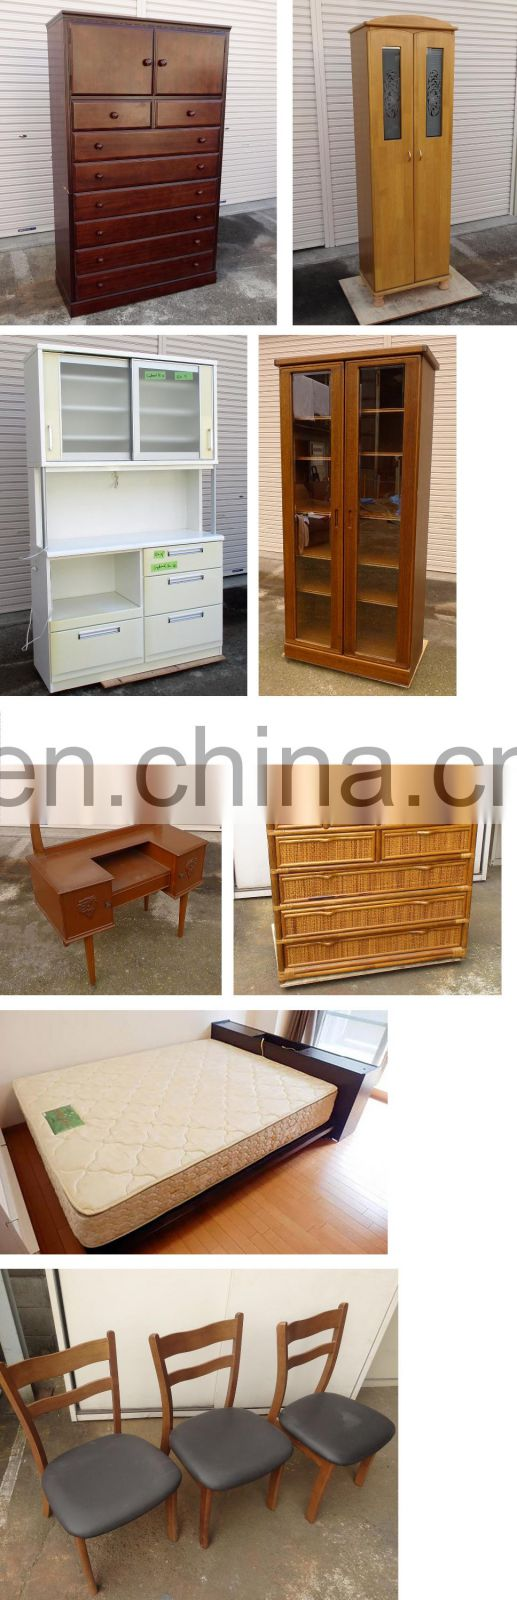 Comfortable Used Japanese Latest Bedroom Furniture Designs /the Dressers, the Beds, etc.